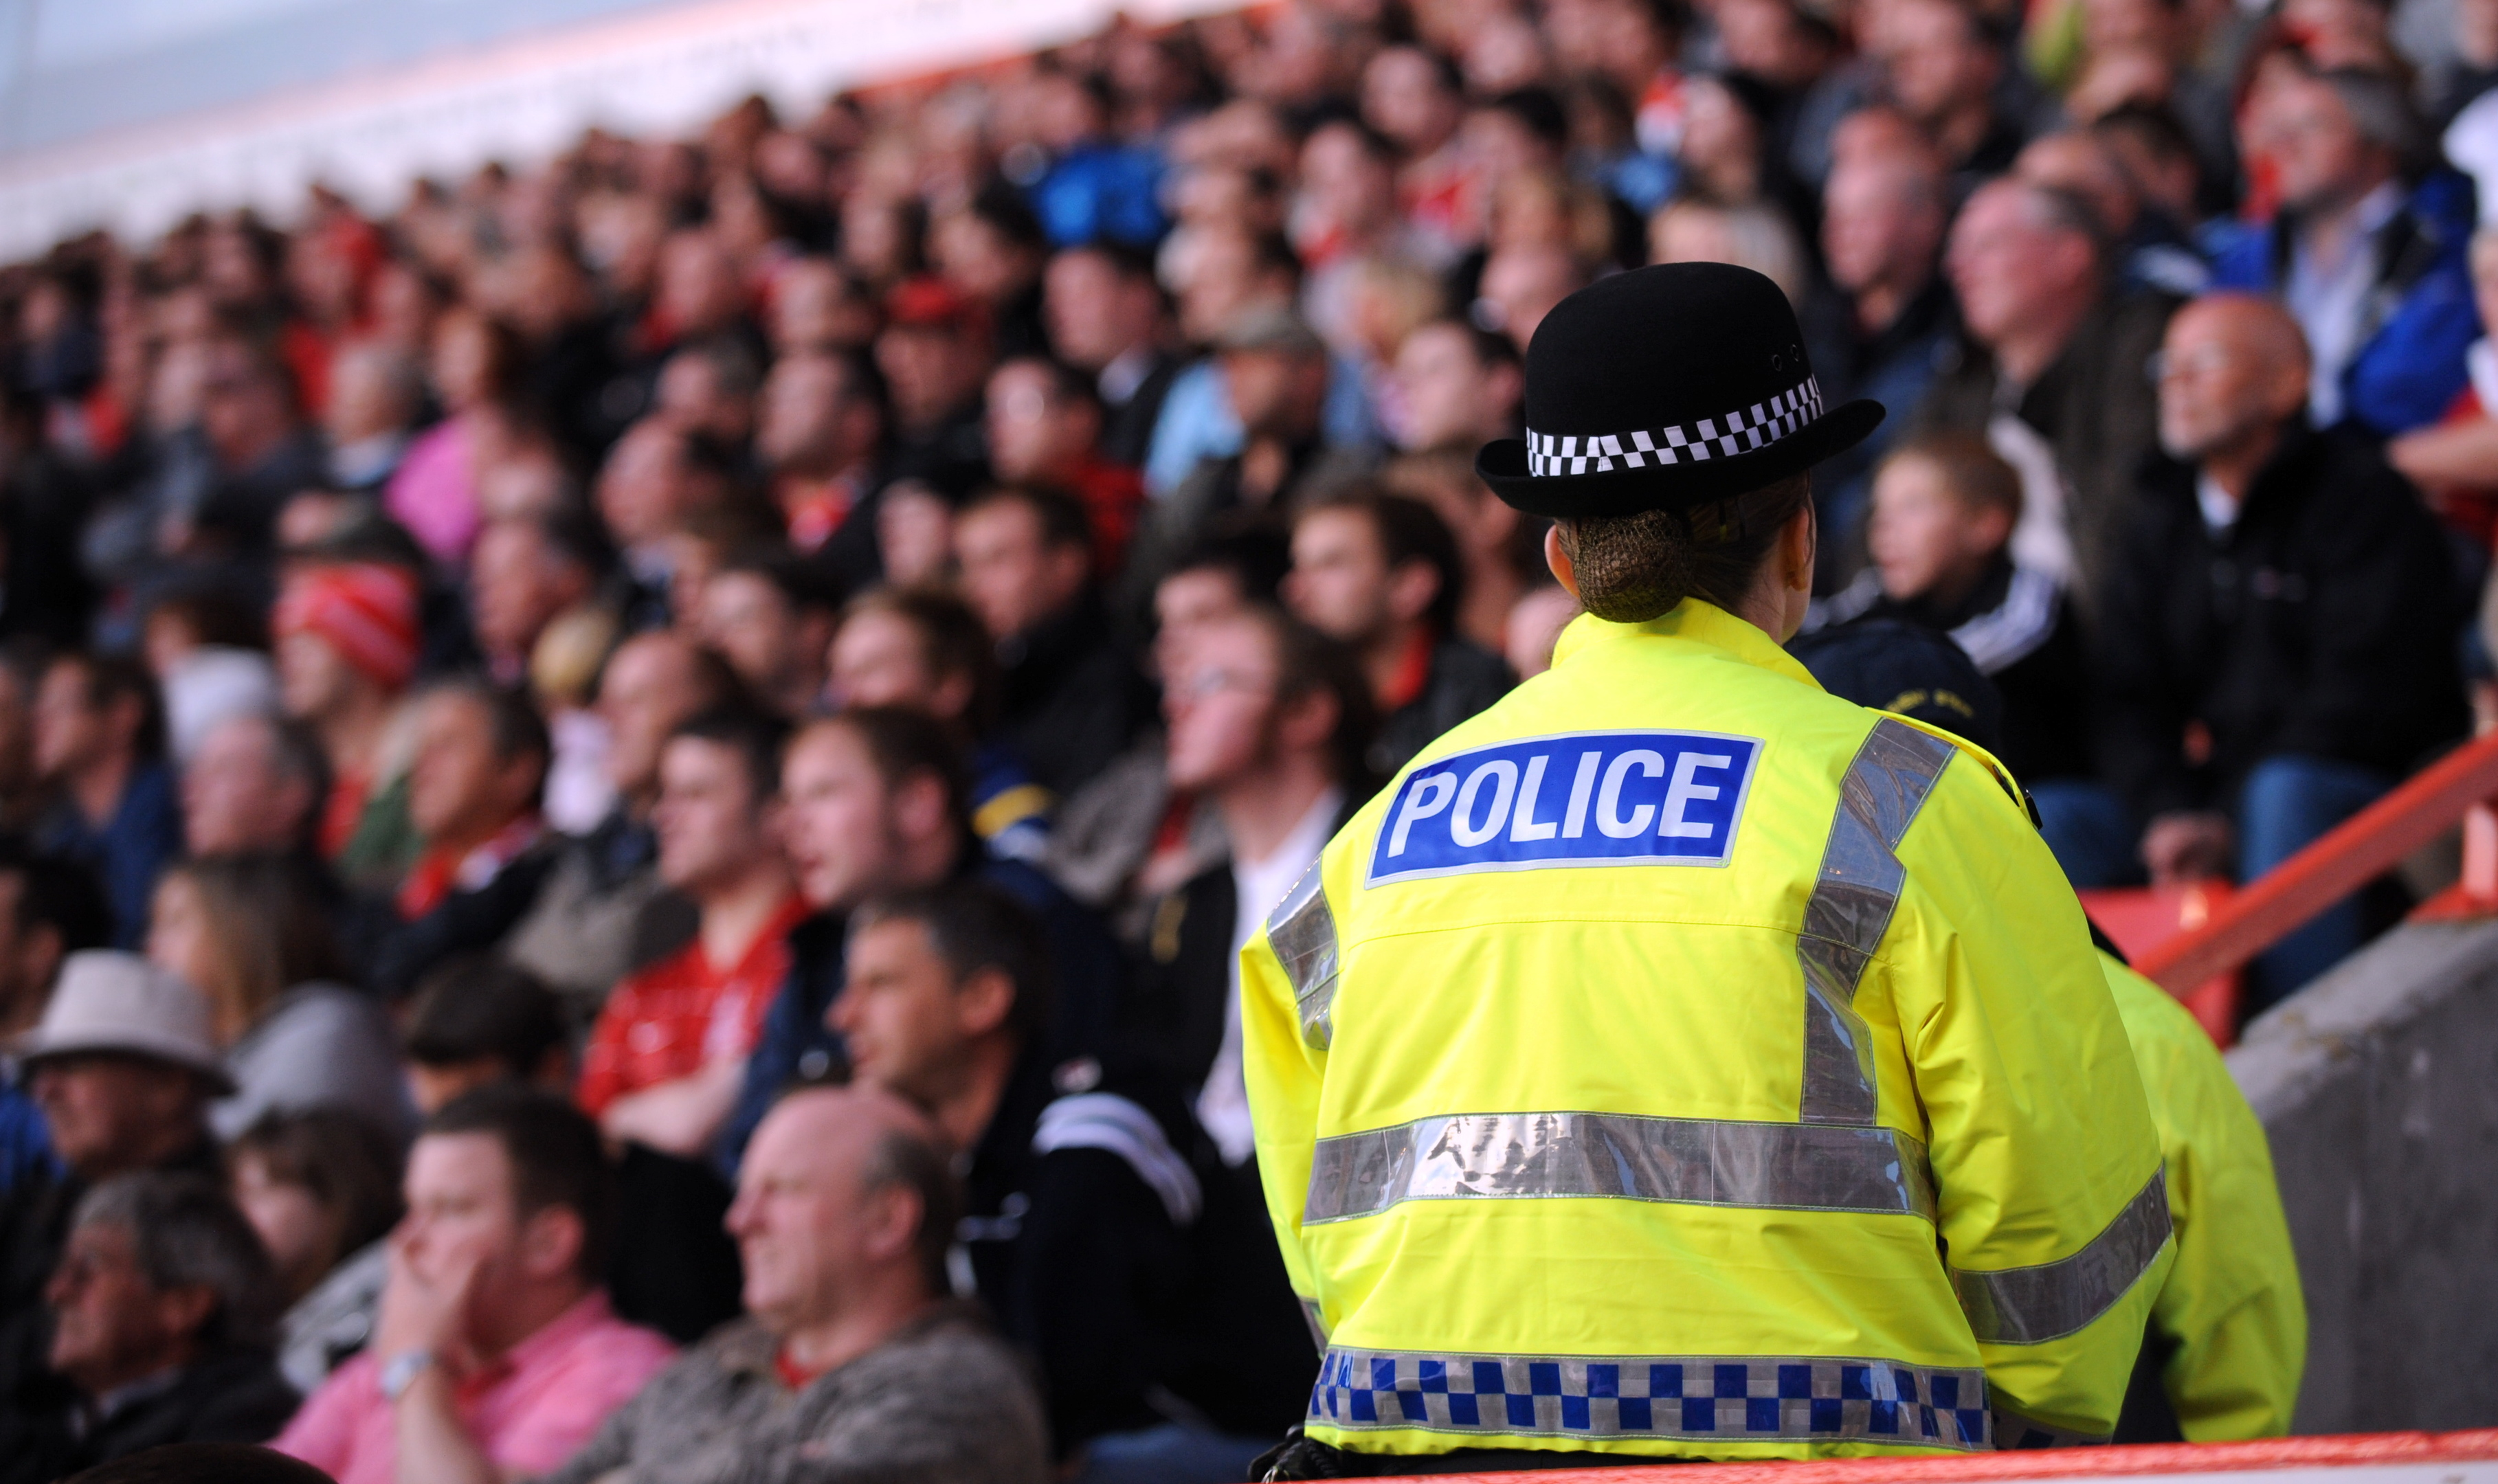 Police at a Dons match.